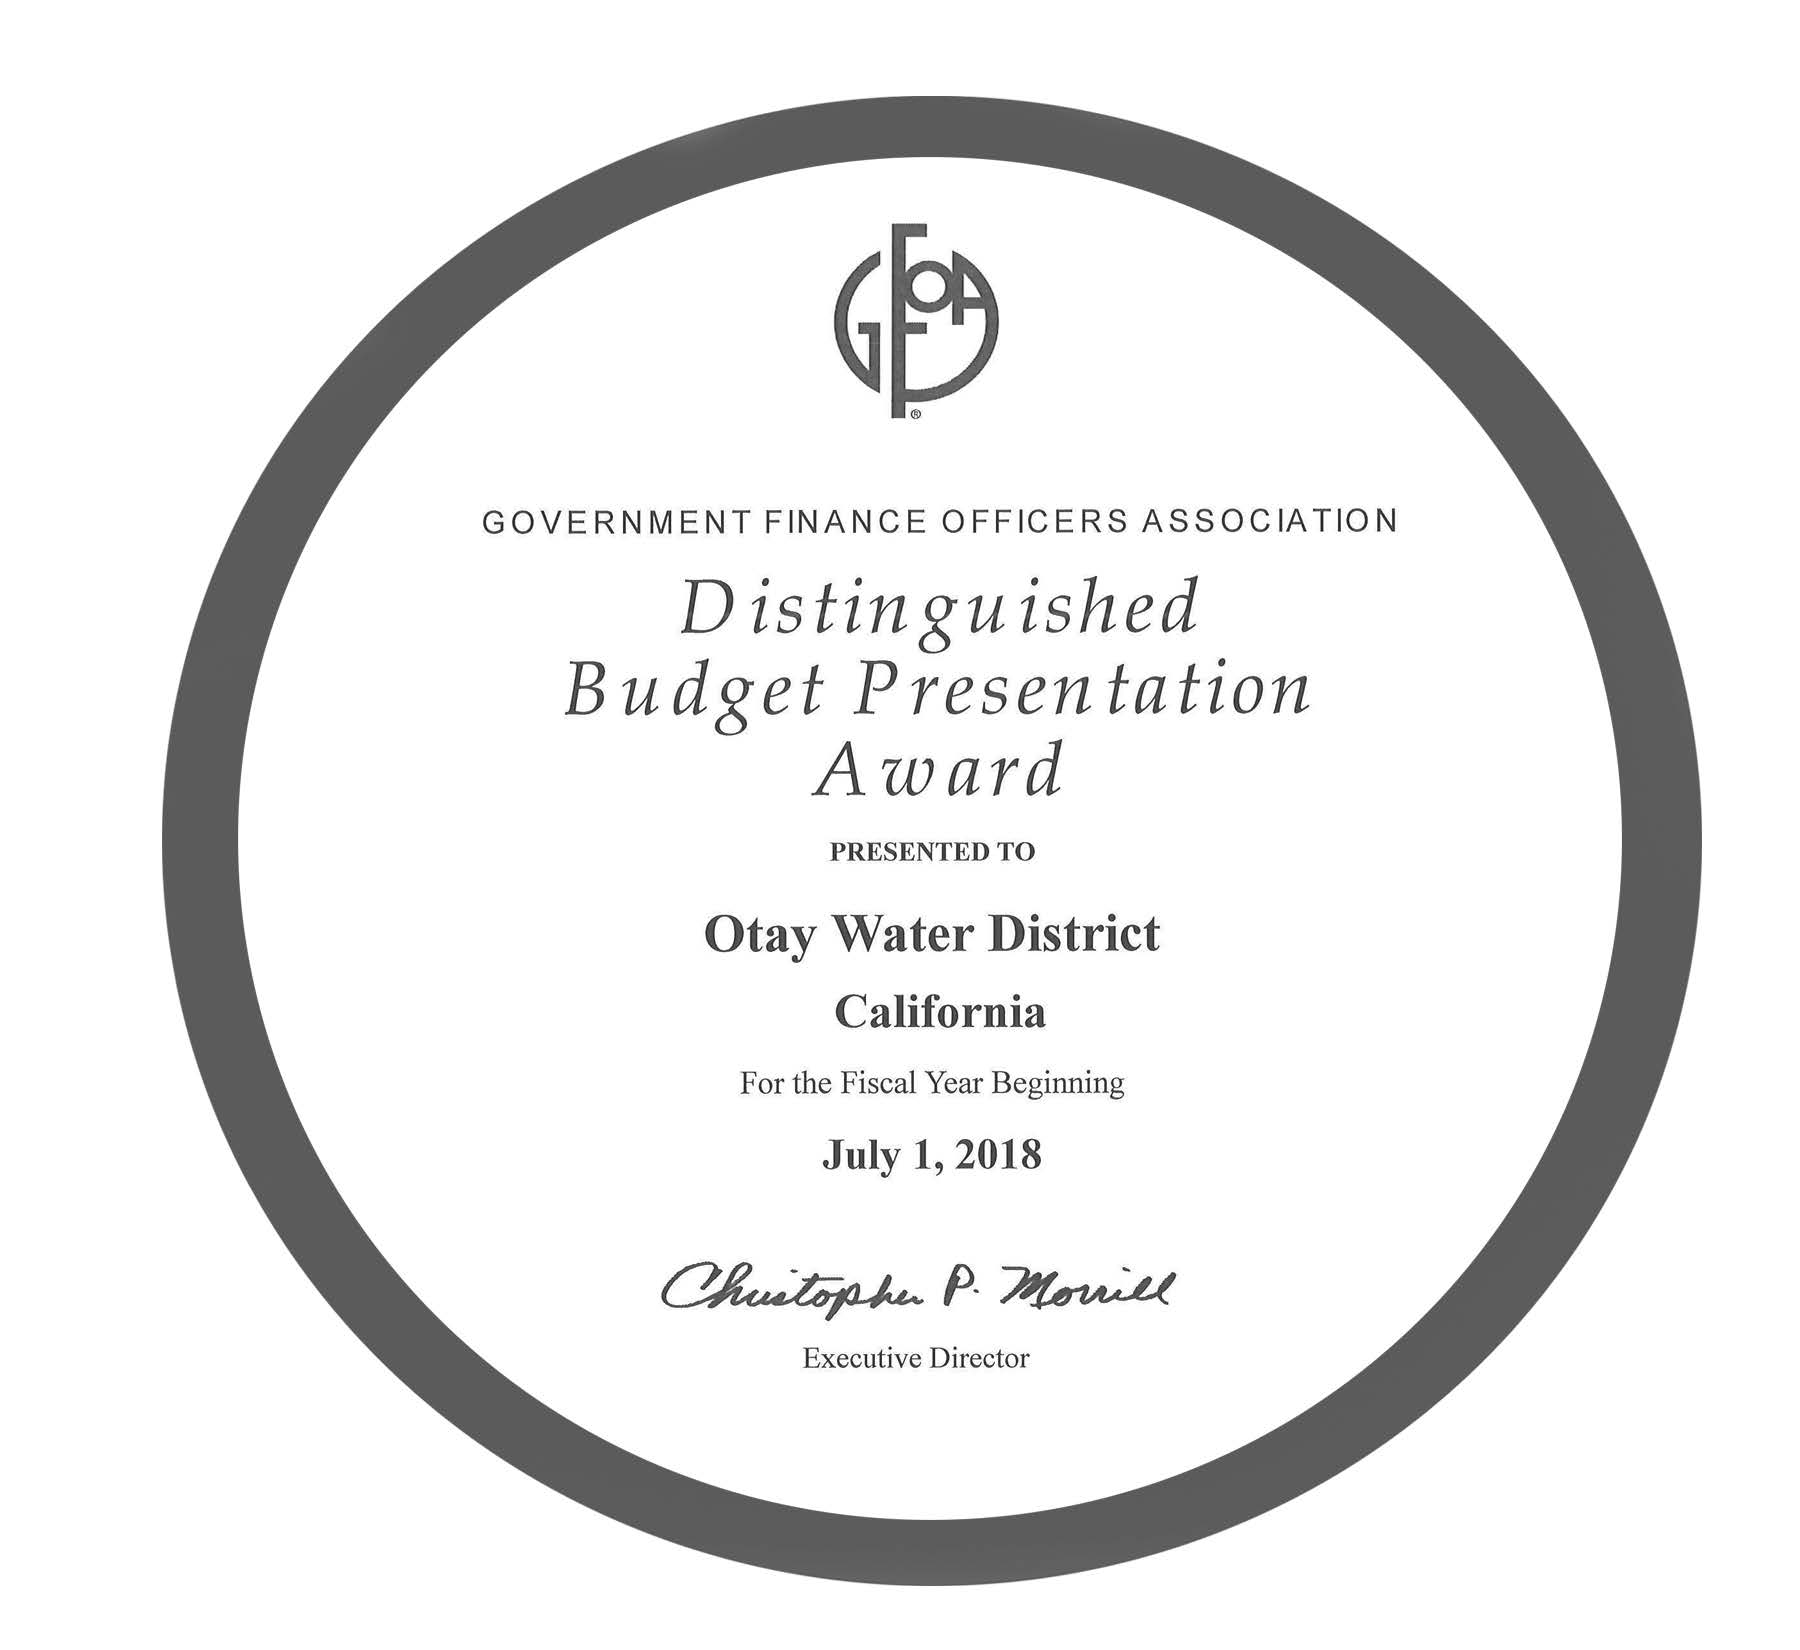 Distinguished Budget Presentation Award July 1, 2018